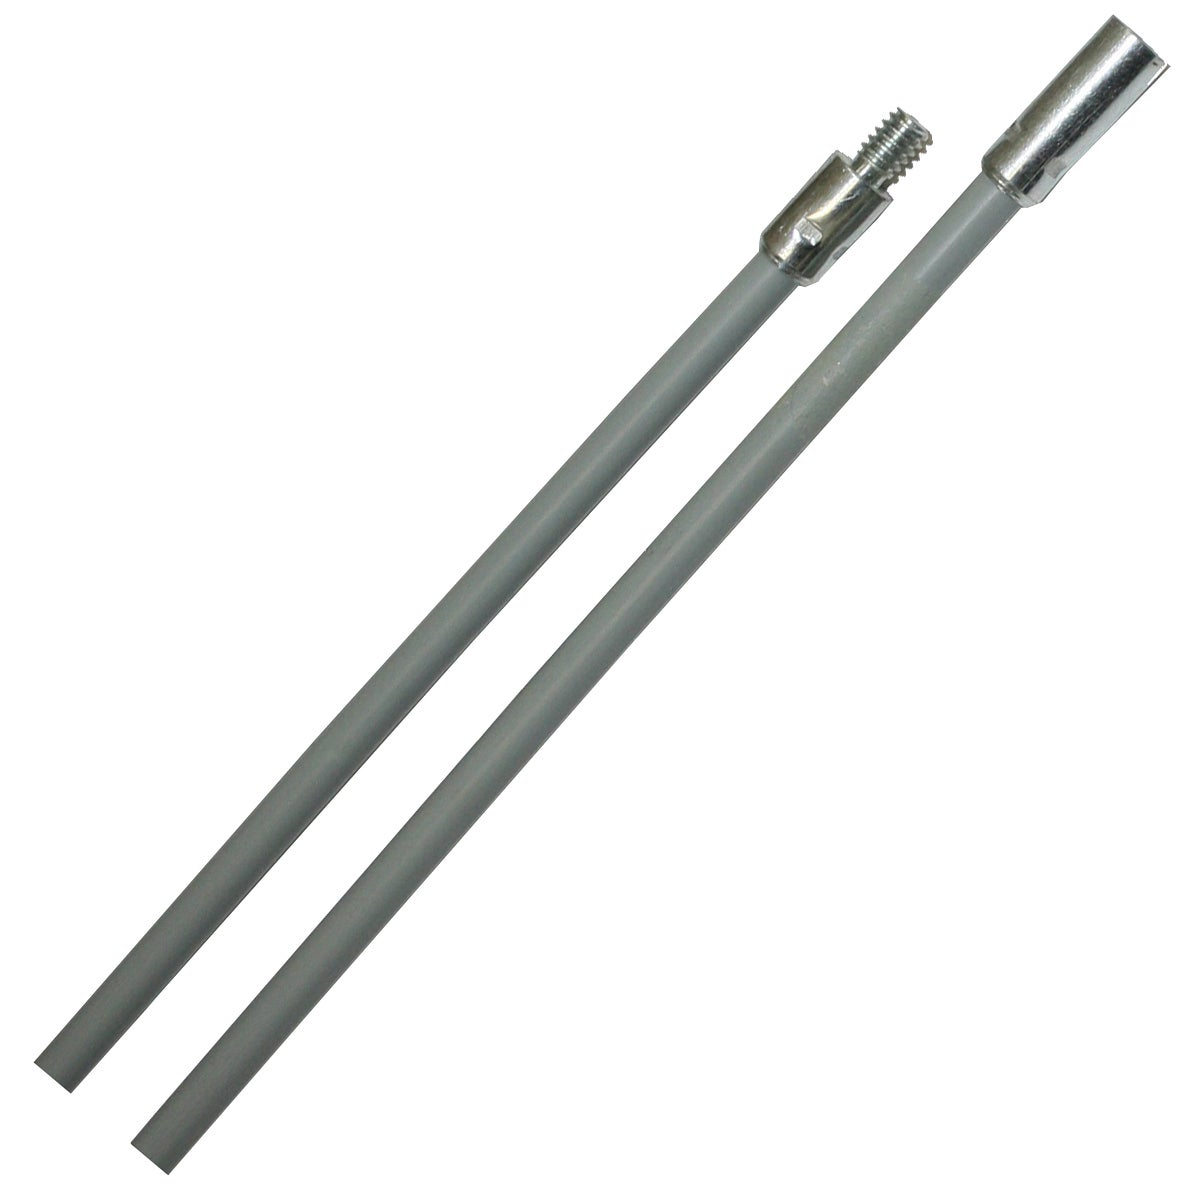 "Jensen Rutland 25P-5 1/4""- 20 Threading X 5' Flexible Pel..."